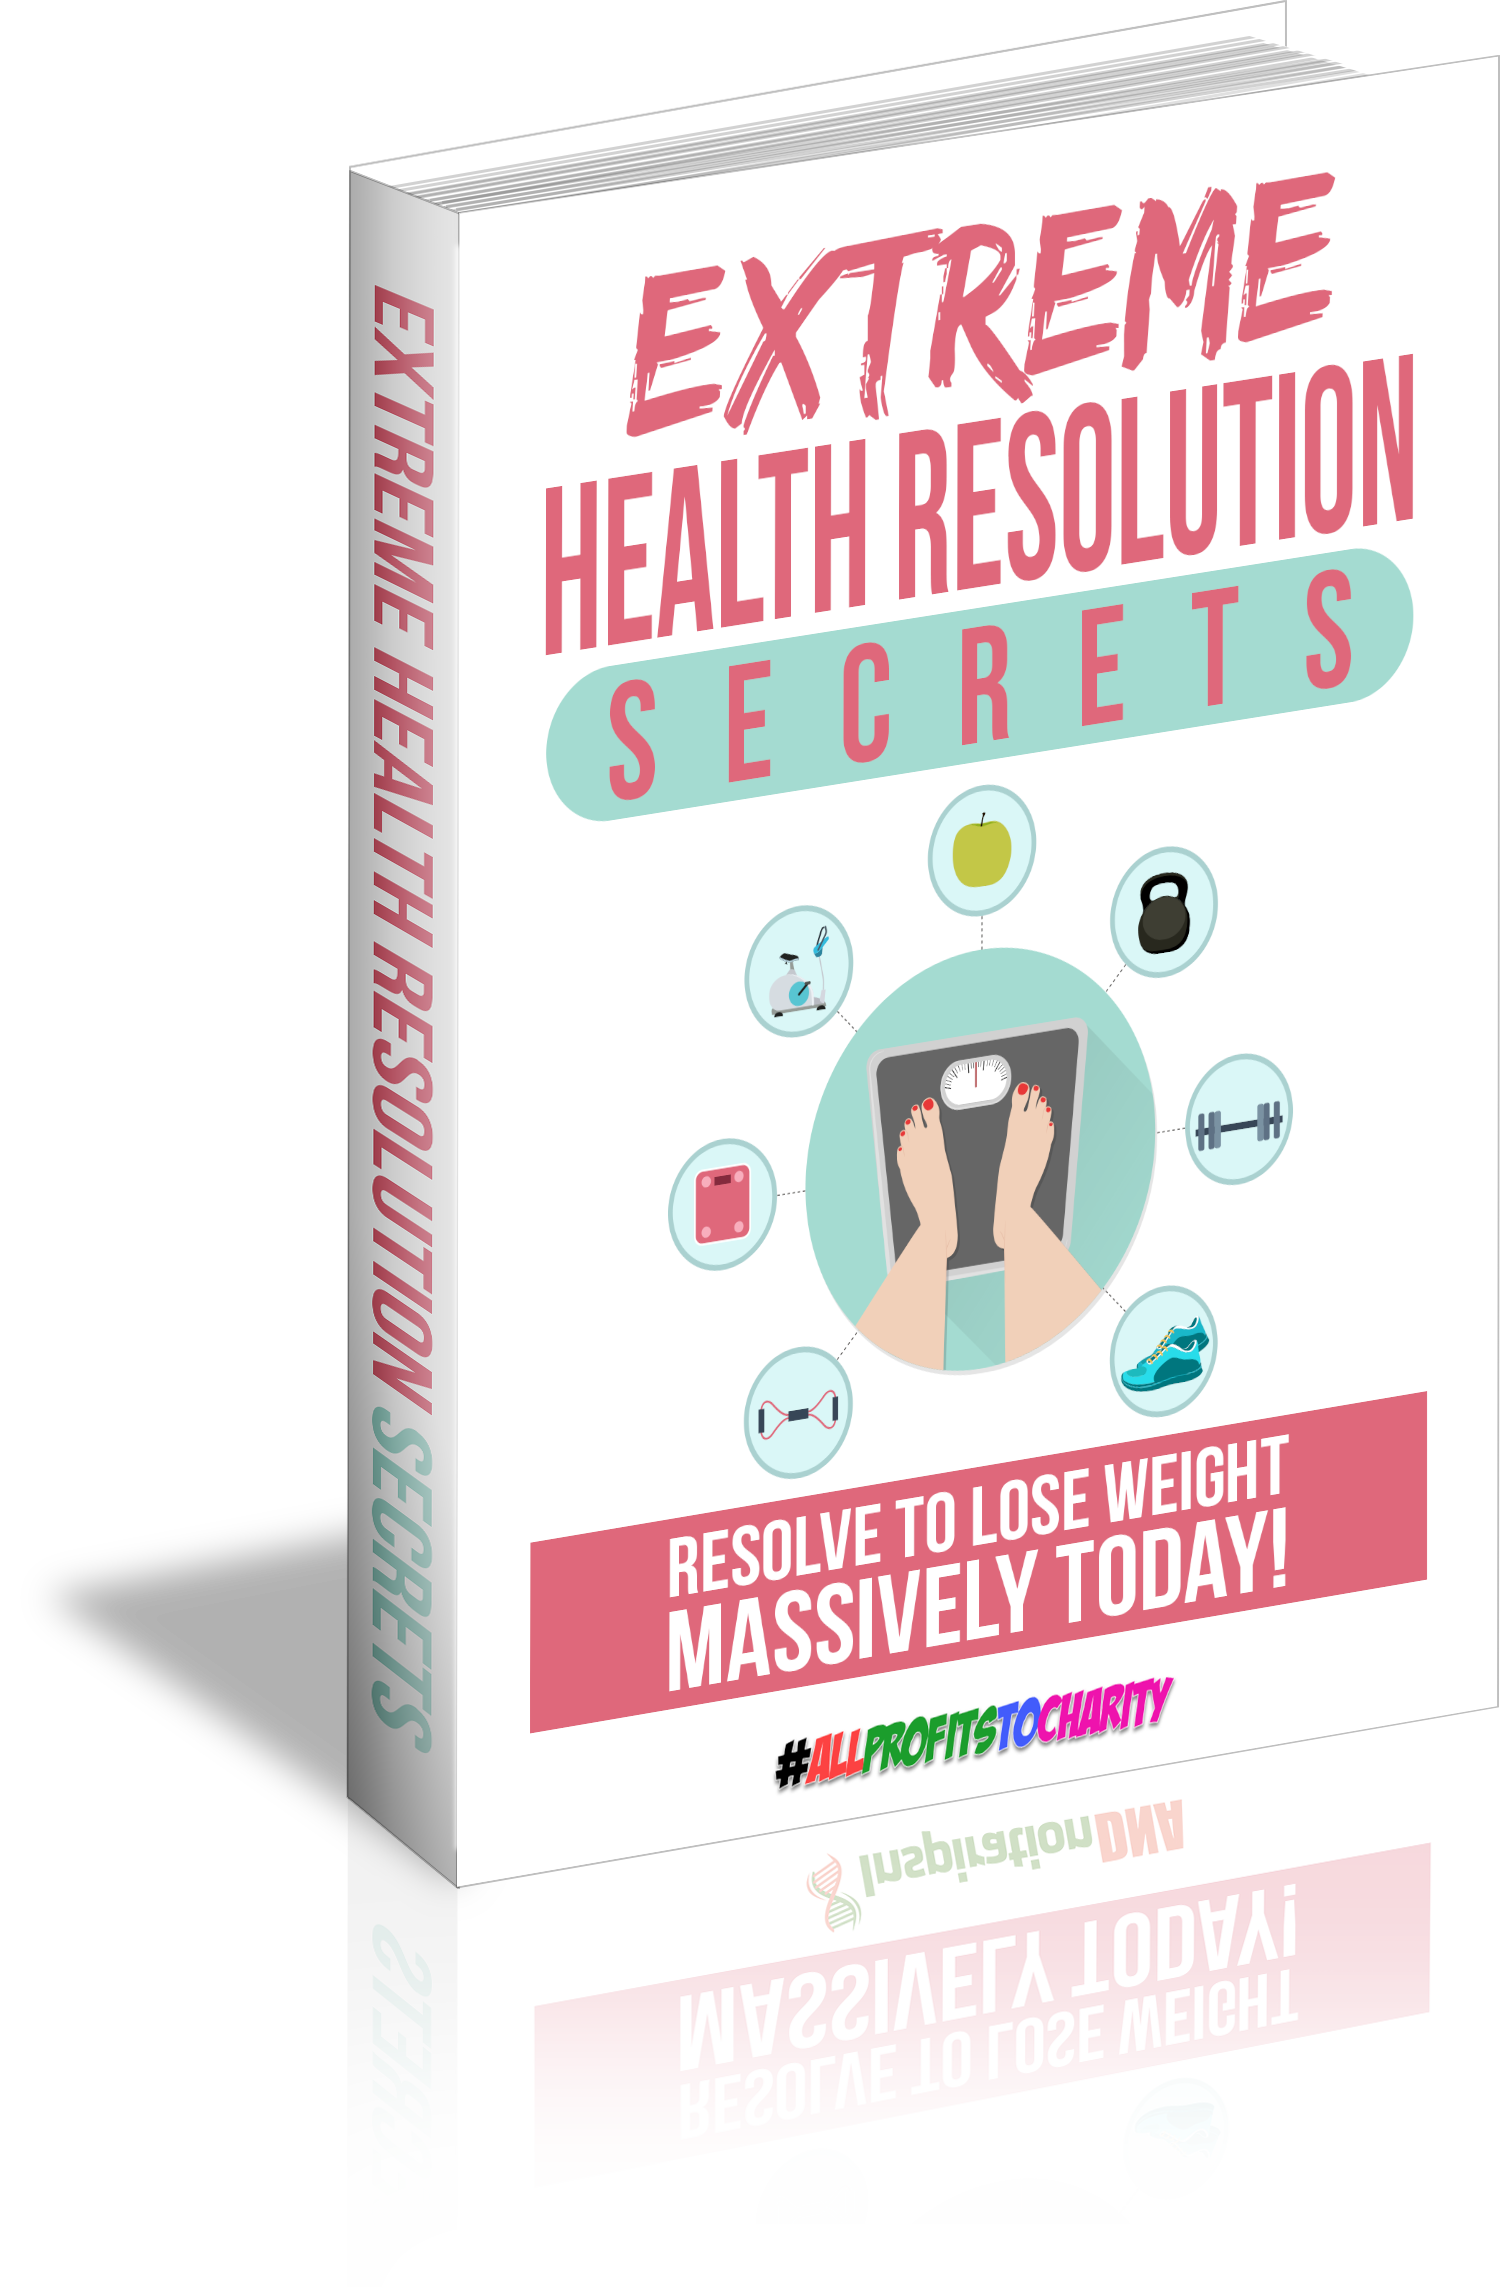 Extreme Health Resolution Secrets cover